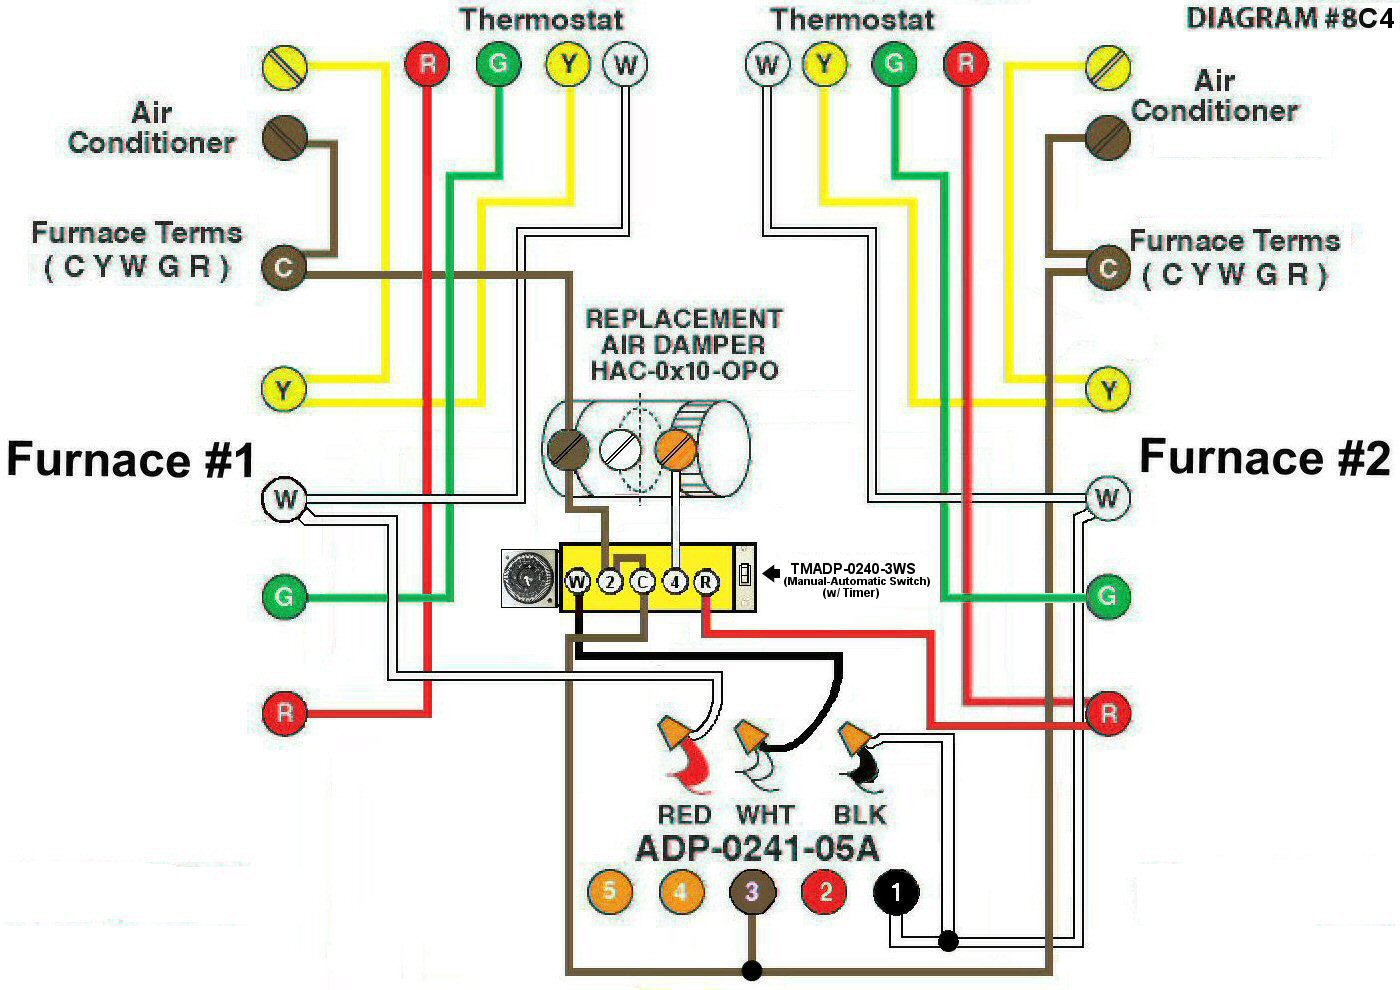 Modine Unit Heater Manual Cheap Heaters Gas Fired Wiring Diagram Pv Fan Diagrams Schematics Pool Pd A With